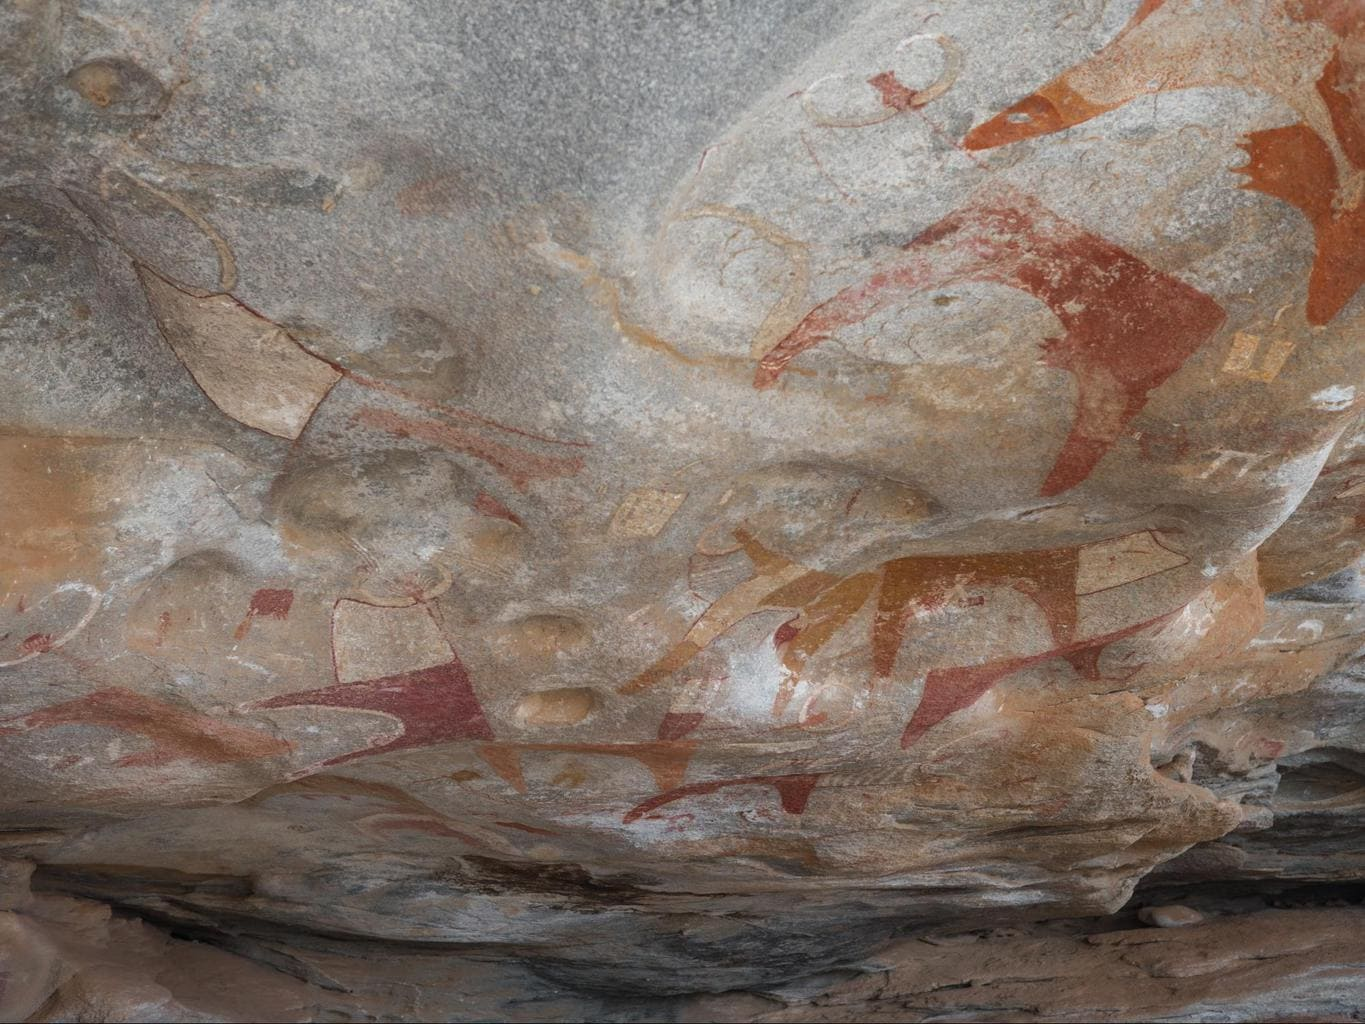 The rock paintings in one of the shelters of Laas Geel